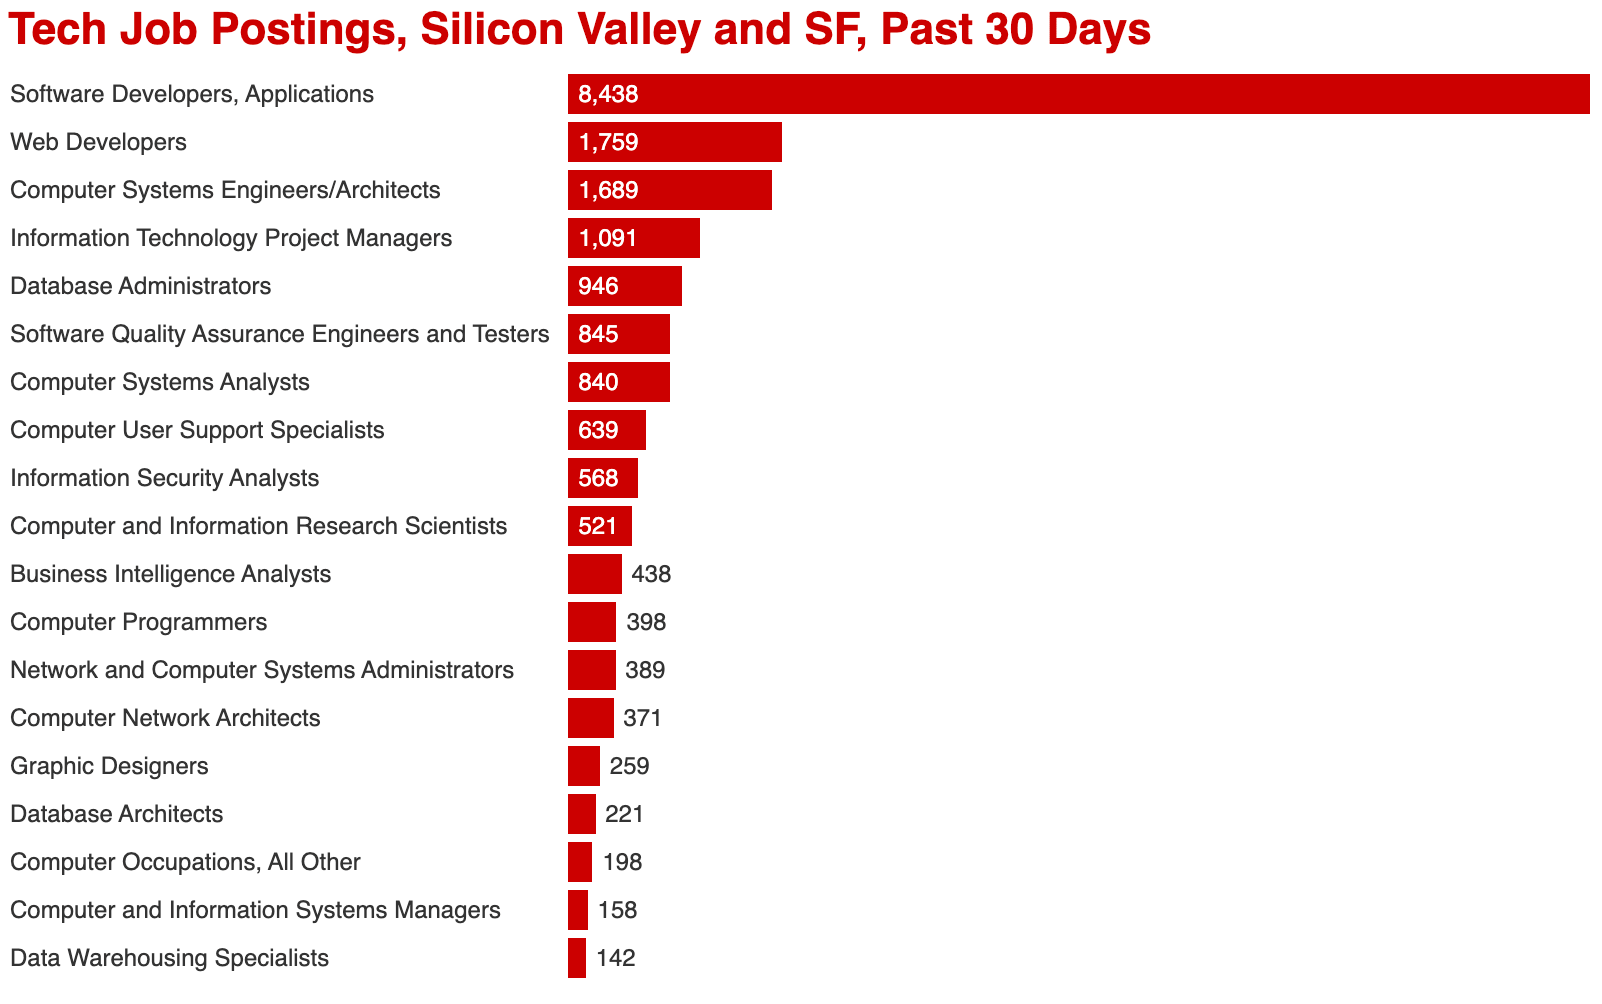 Tech Job Postings, Silicon Valley and SF, Past 30 Days